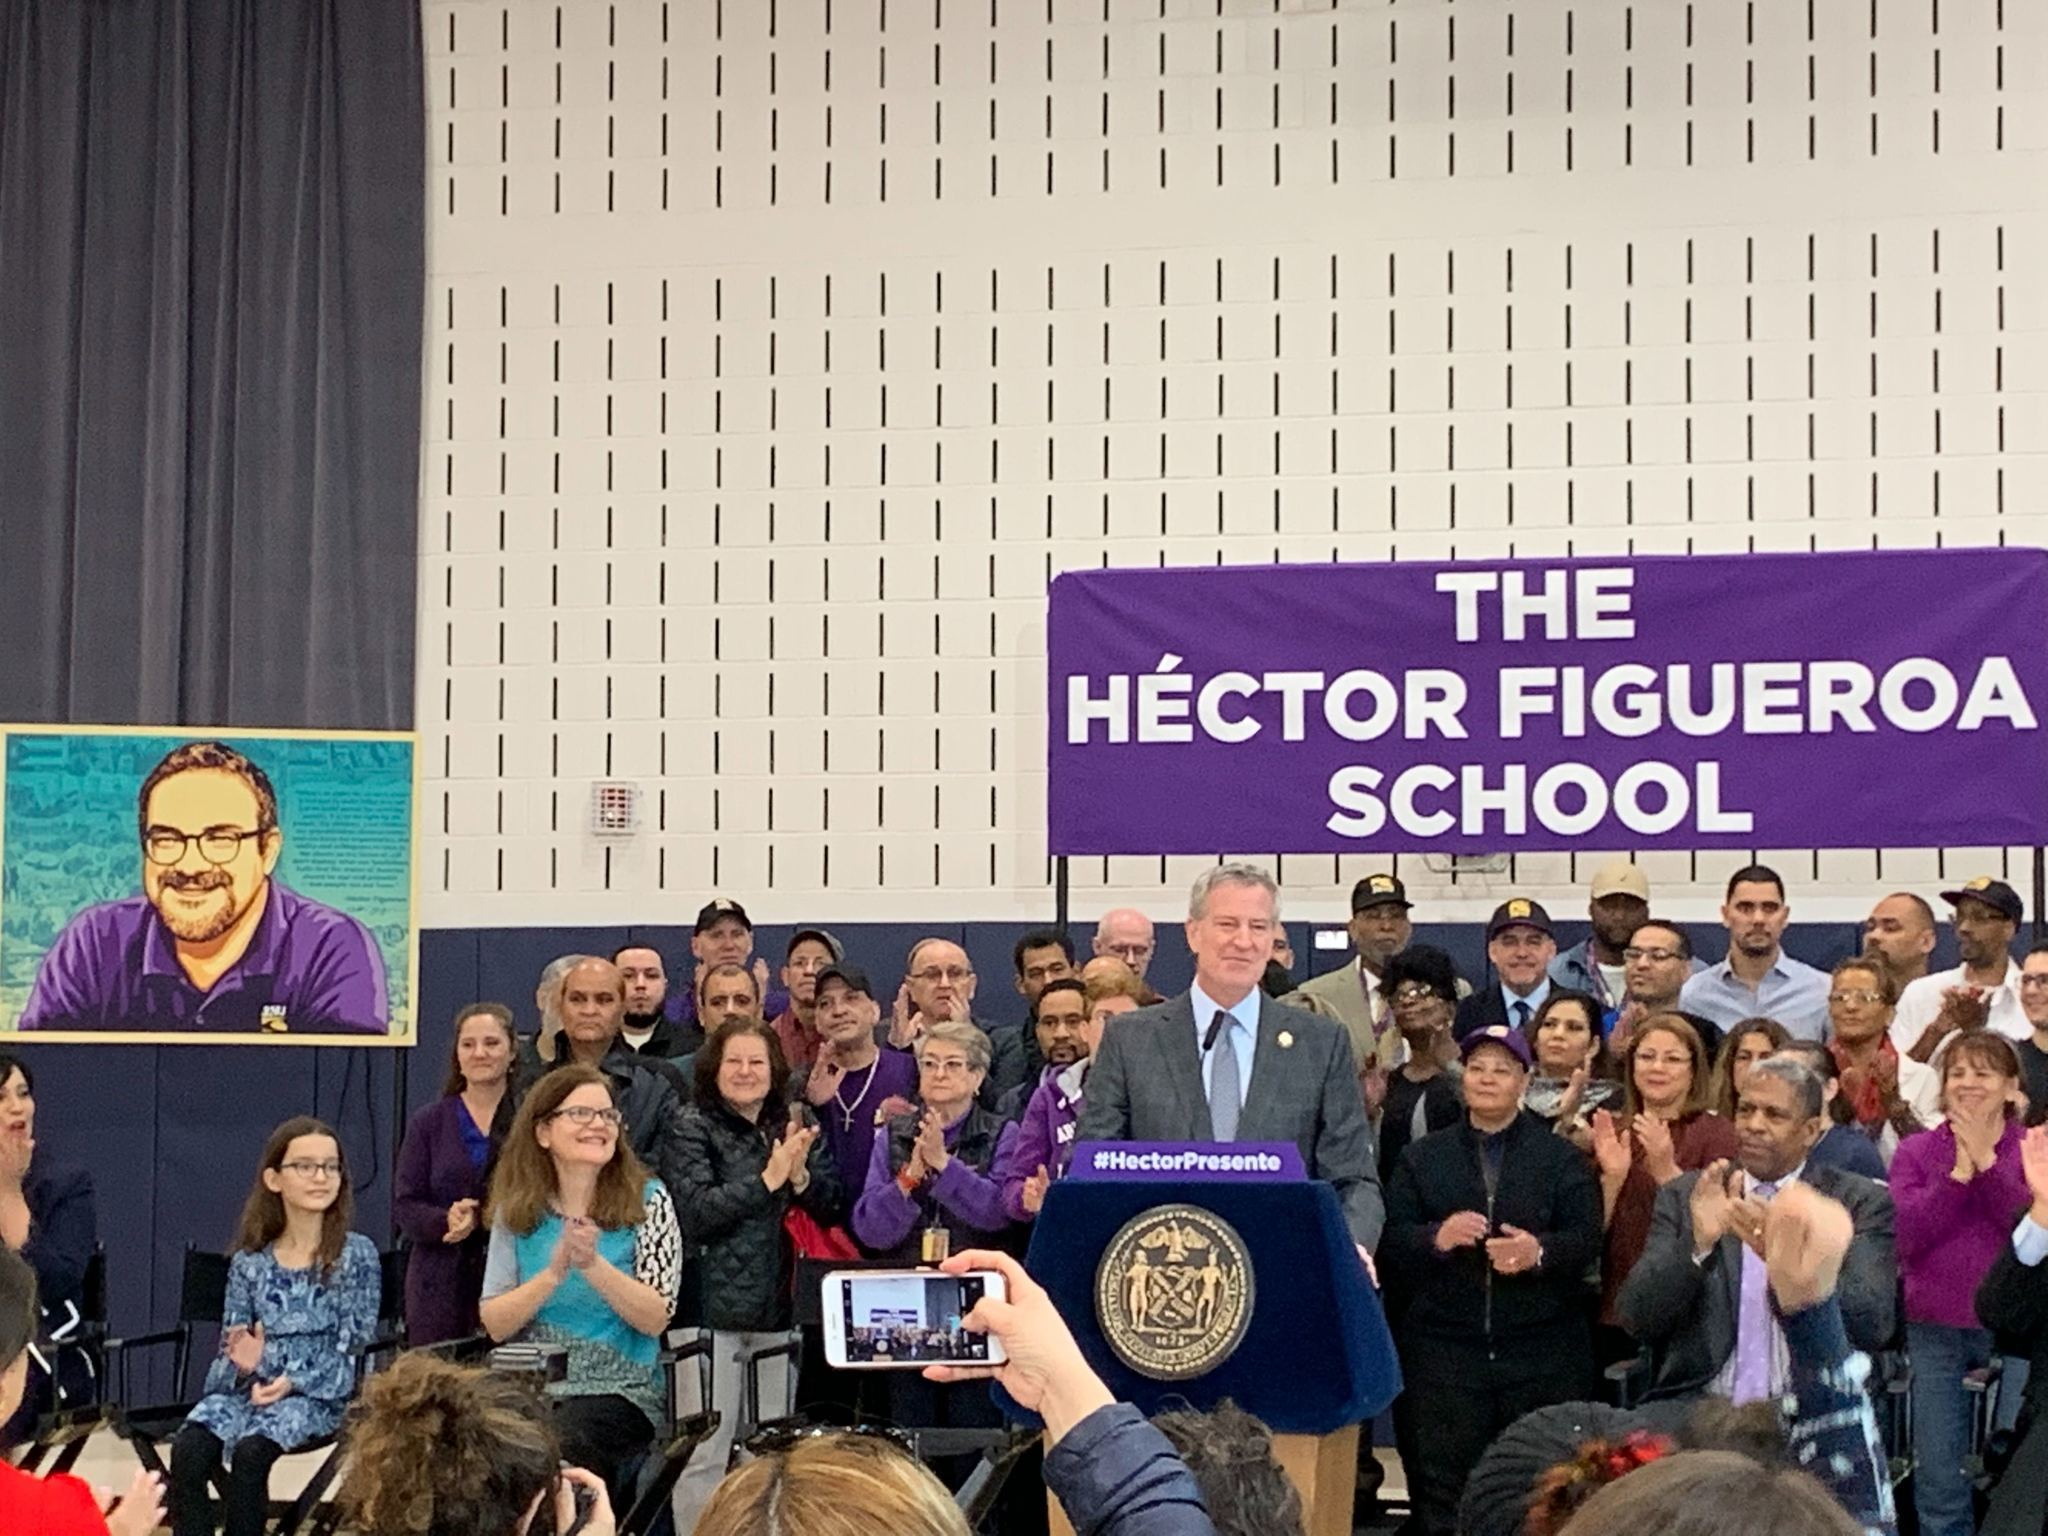 Queens elementary school named for union leader Hector Figueroa